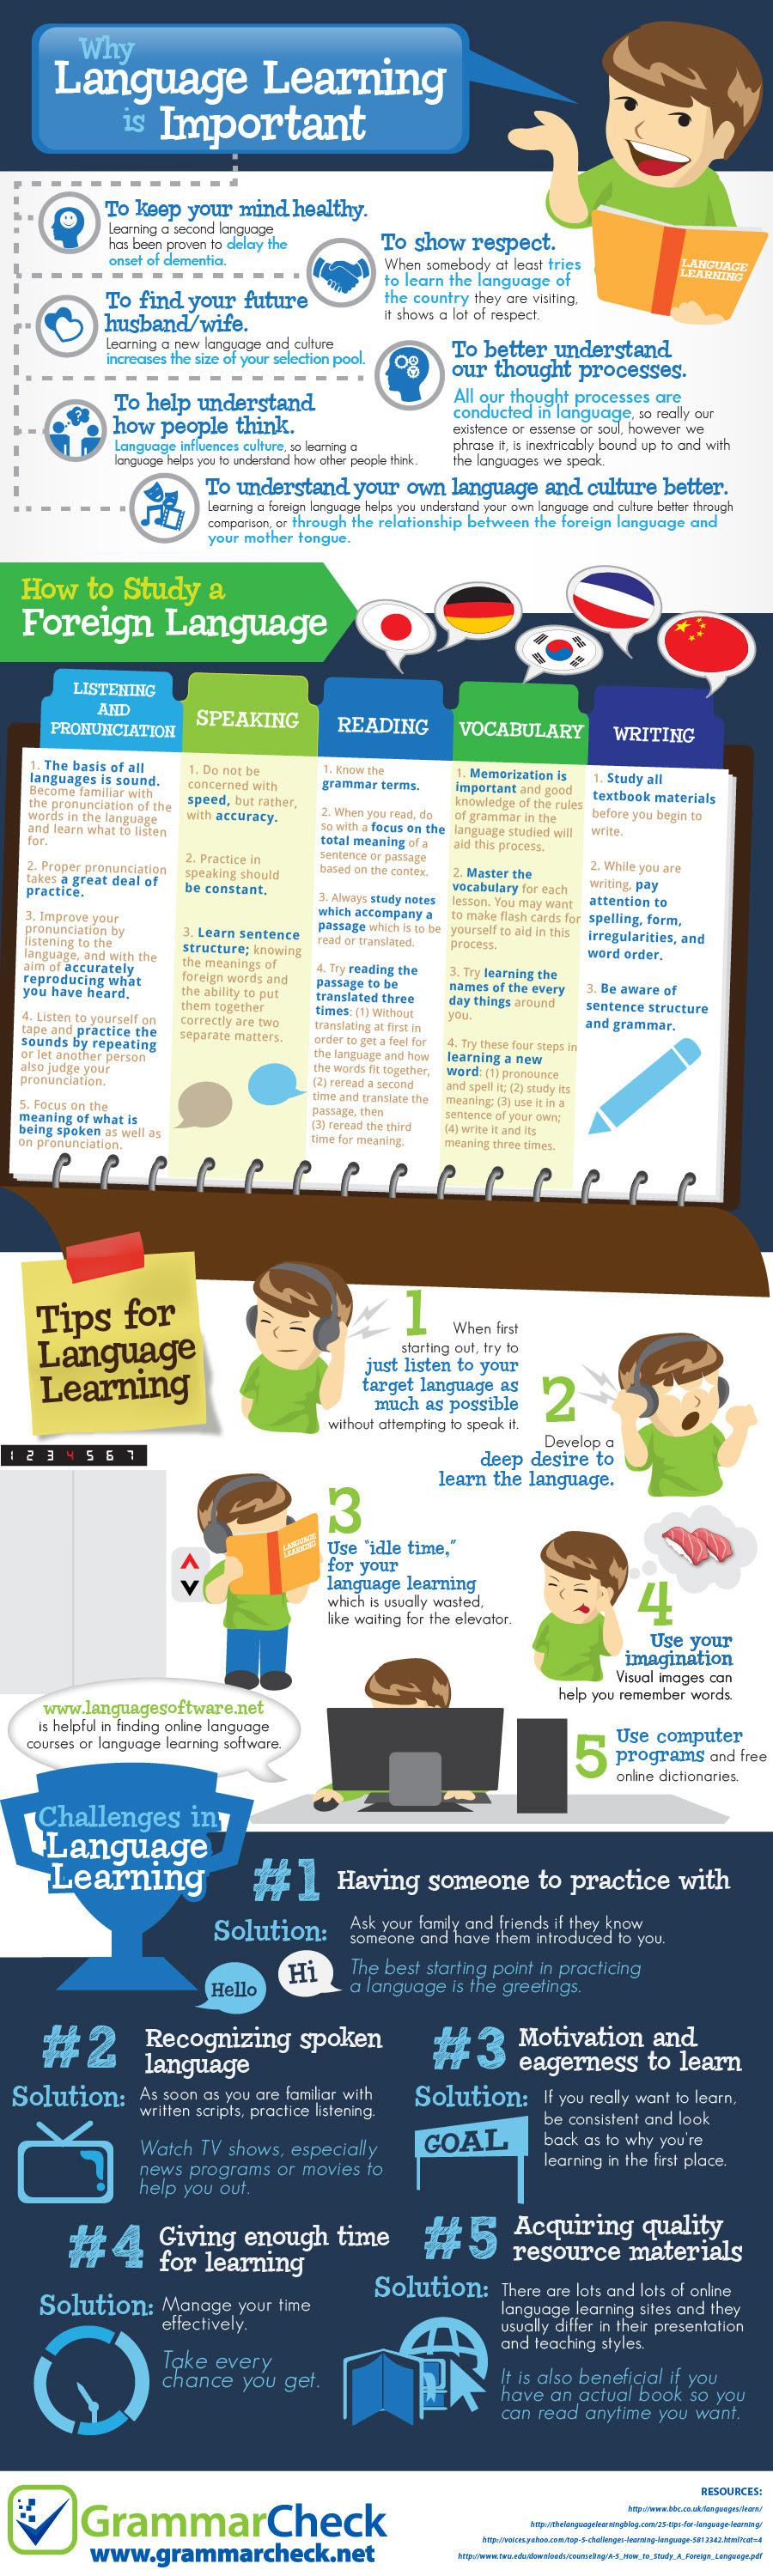 Infographic: Why Language Learning is Important #infographic